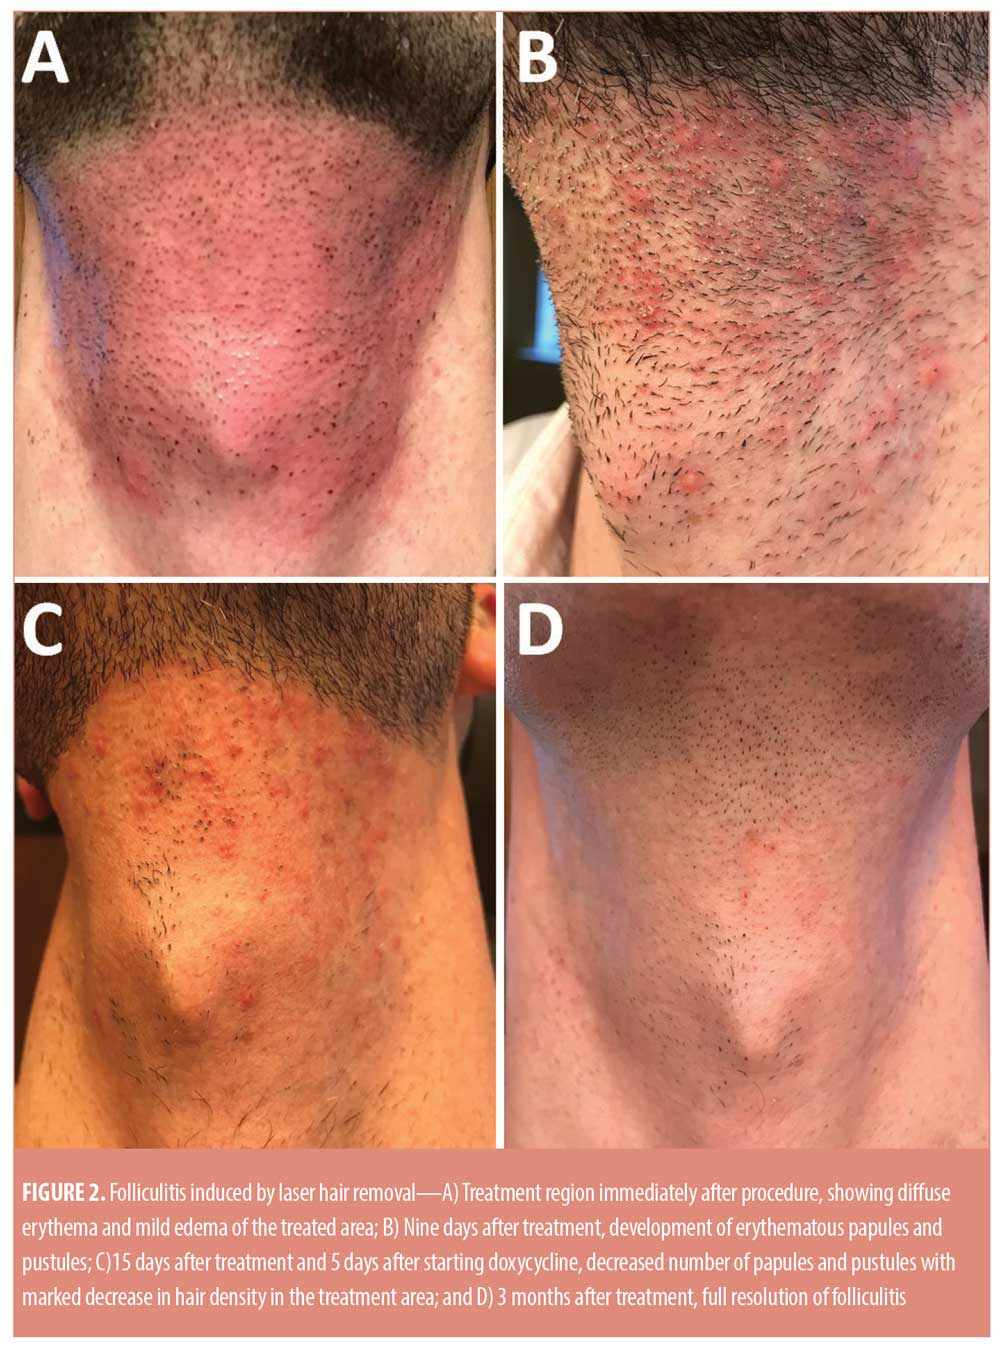 Folliculitis Induced By Laser Hair Removal Proposed Mechanism And